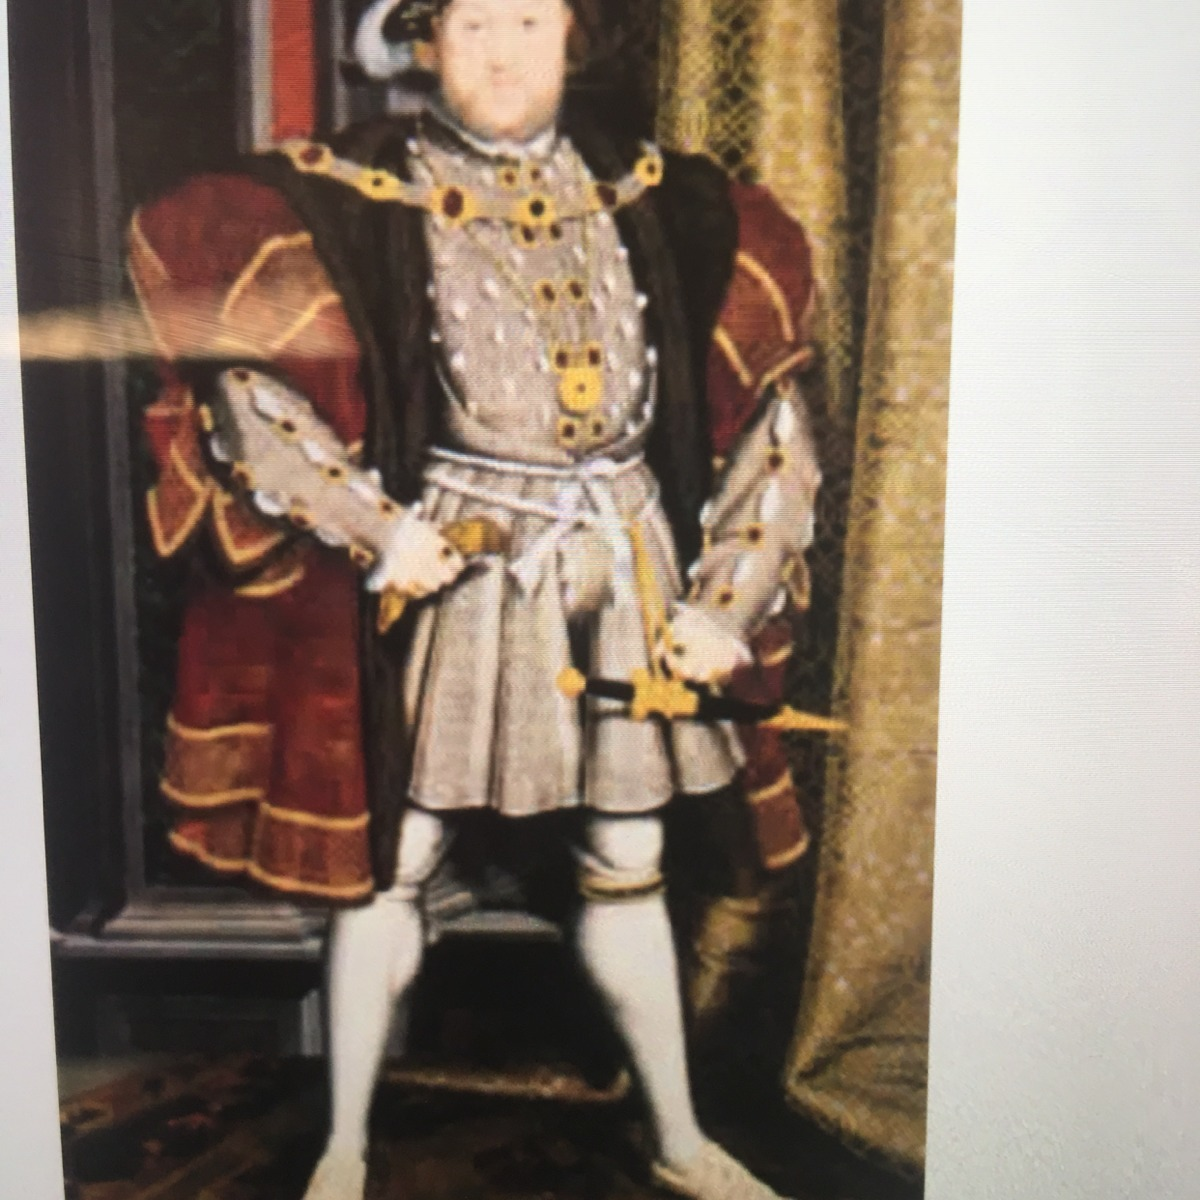 The Above Painting Is Of King Henry Viii Which Artist Painted This